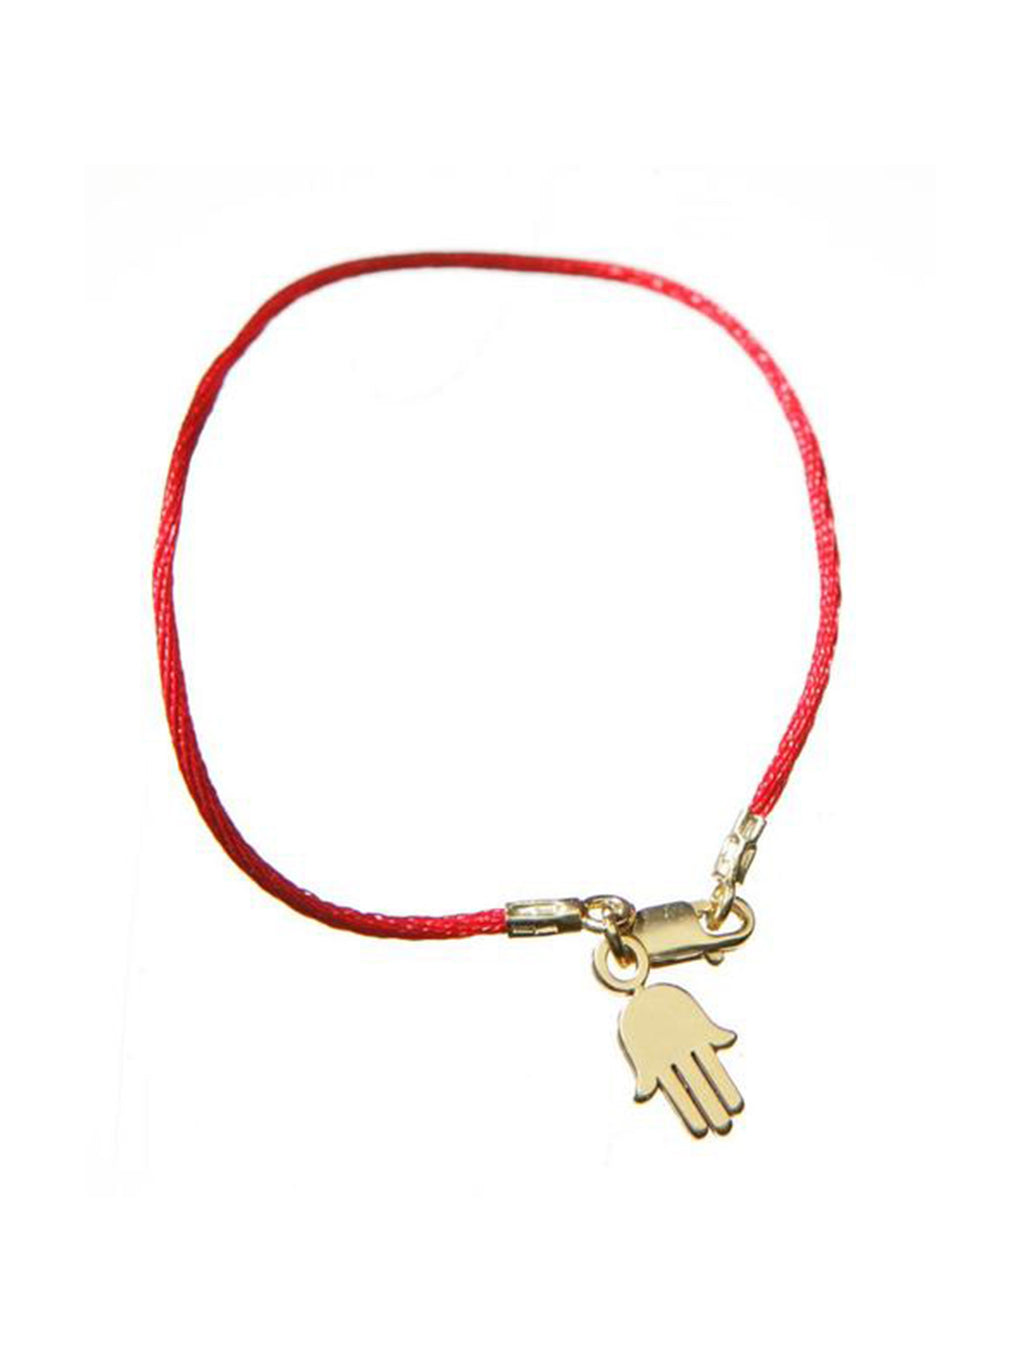 Red Cord Bendel Bracelet with Gold Hamsa - Alef Bet Jewelry by Paula